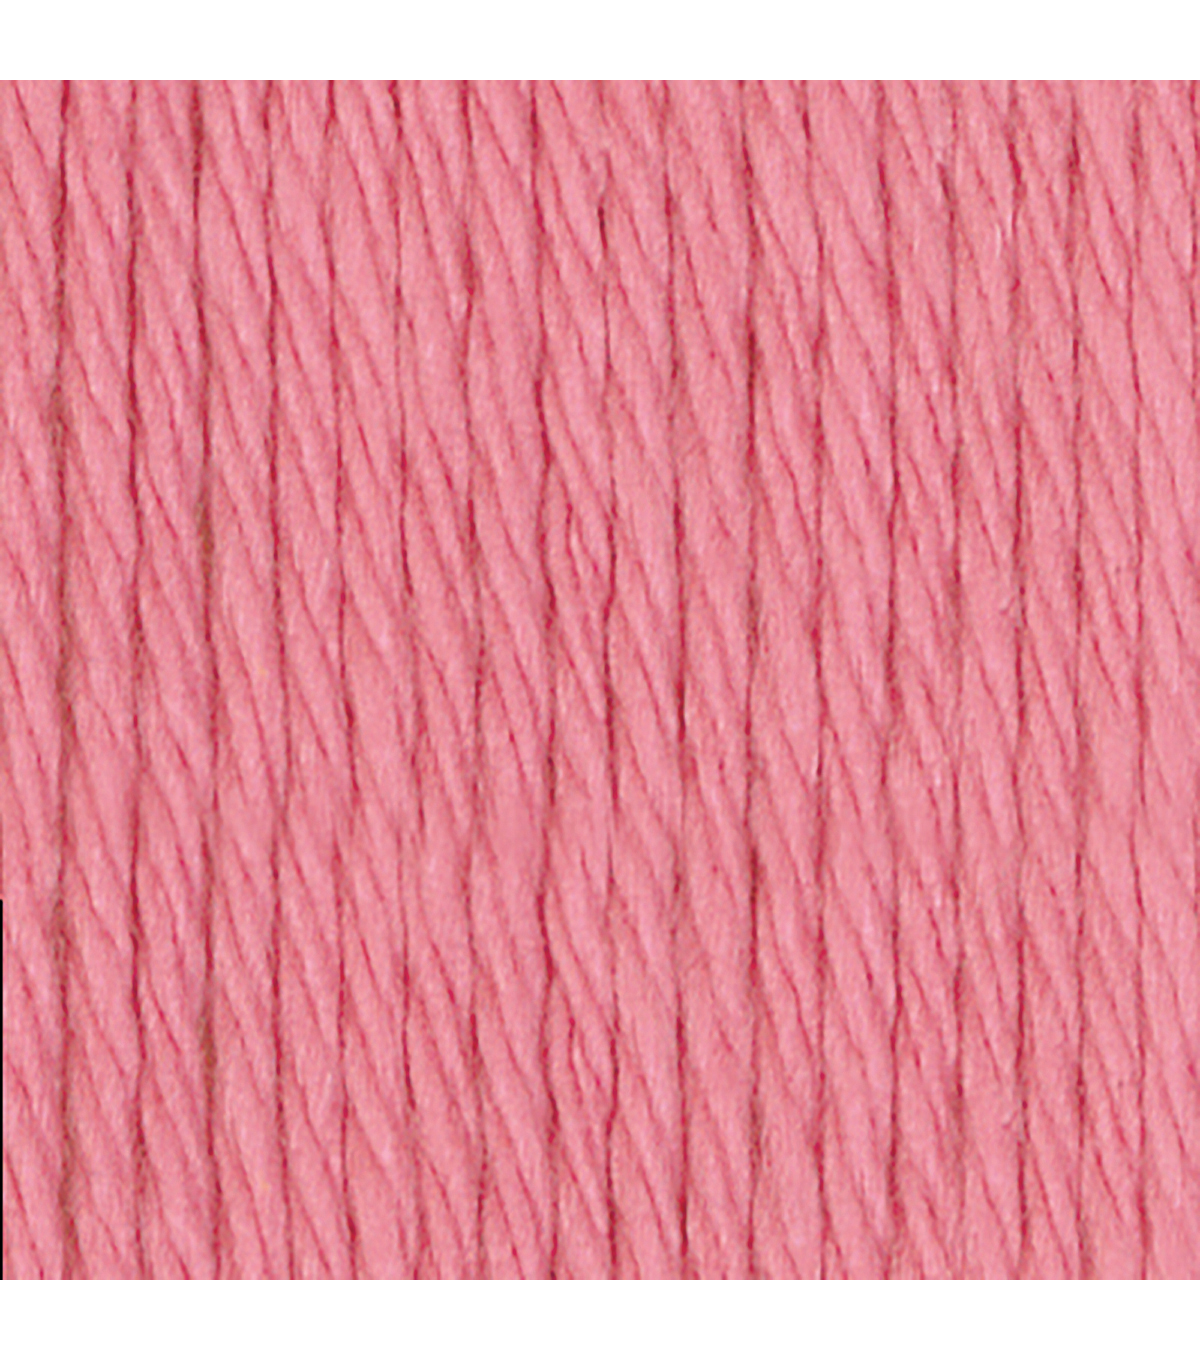 Lily Sugar\u0027n Cream Super Size Yarn, Rose Pink